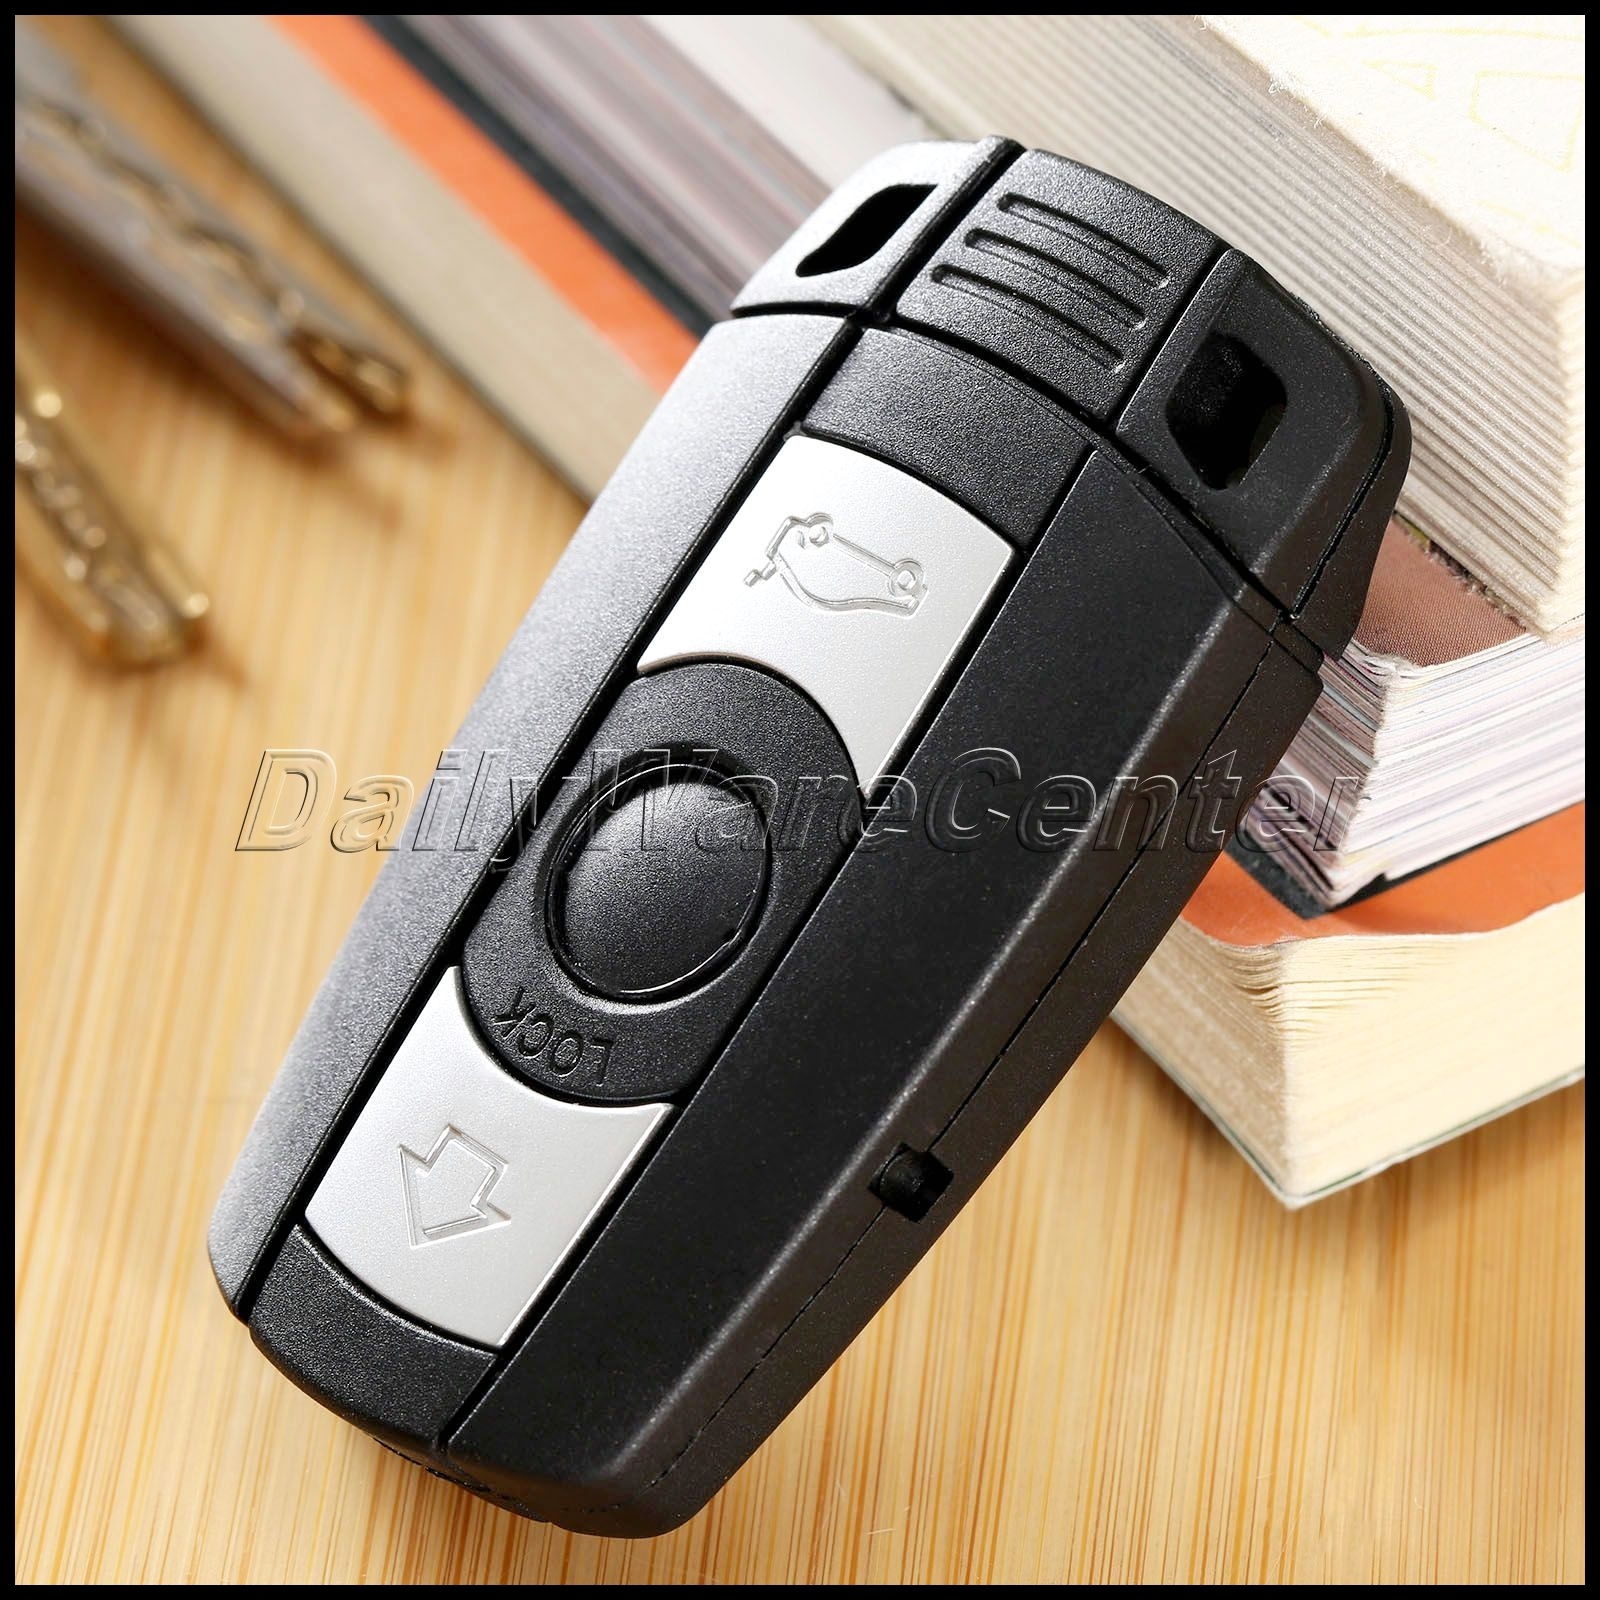 Replacement Shell Car Remote Key Case Cover For BMW 1 3 5 6 7 E Series BMW X5 X6 Z4 Smart Key Shell Blade Fob for BMW M3 M5 X5 in Tire Pressure